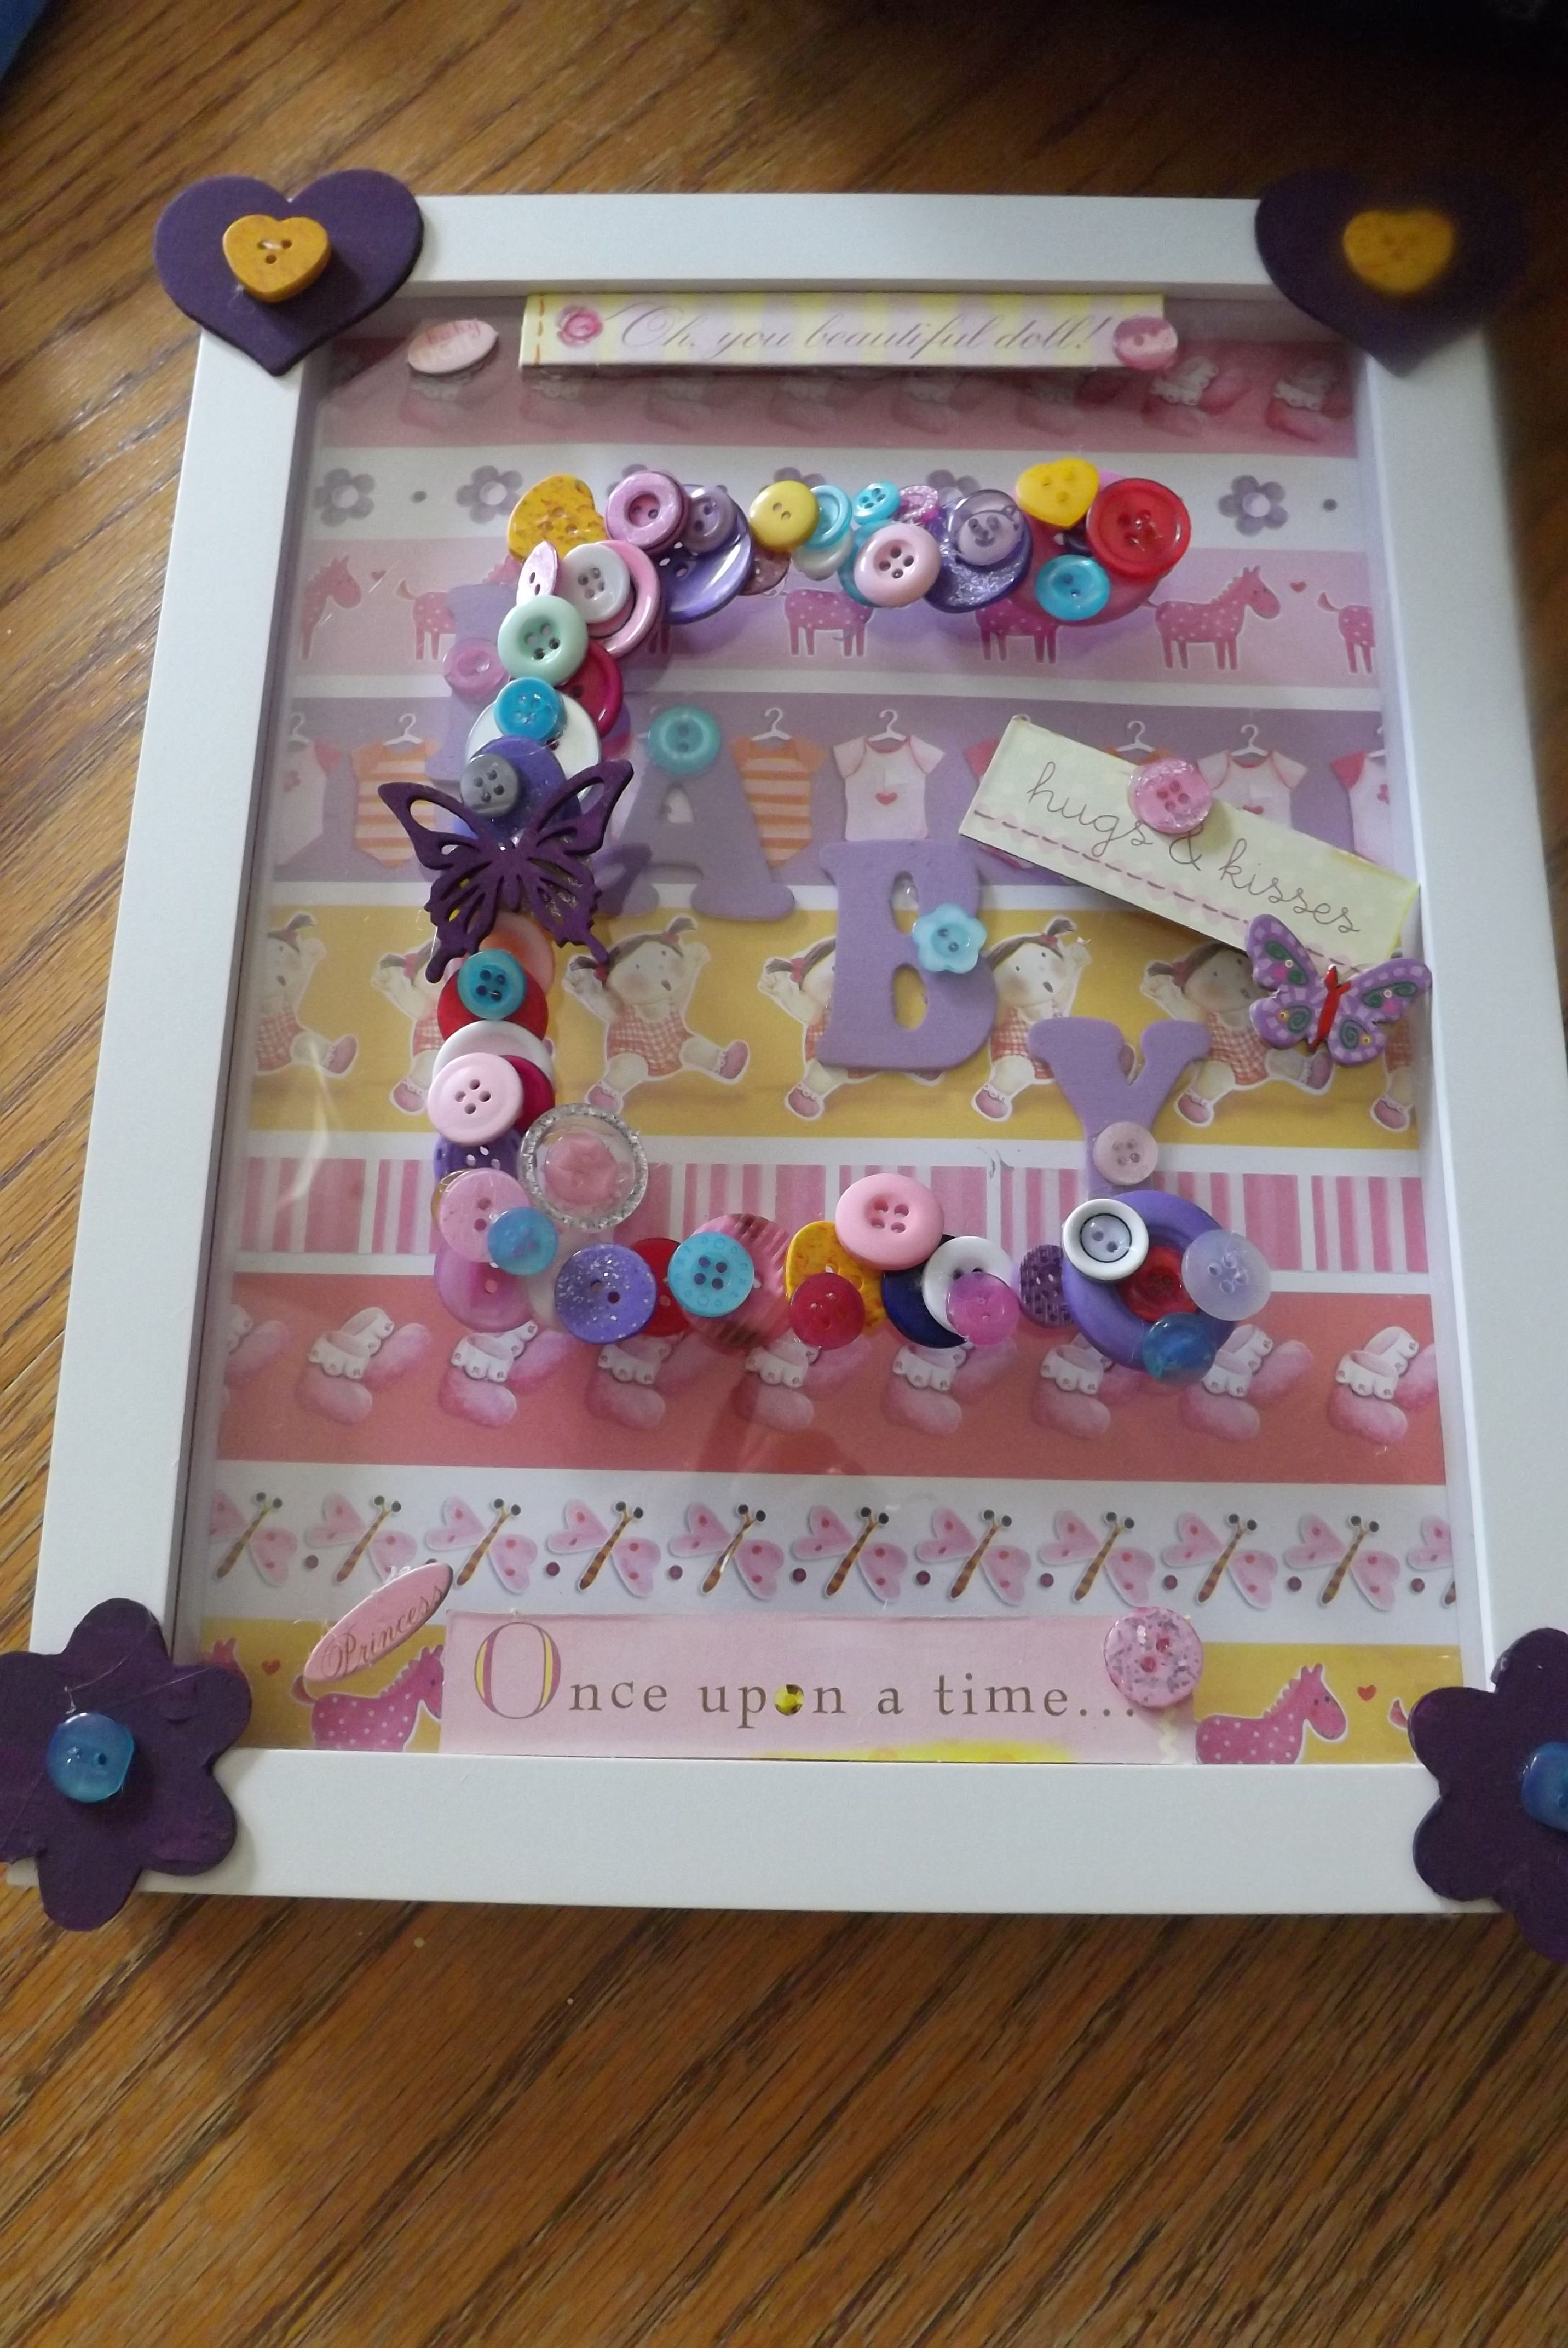 Homemade decorated frame for baby room Arts & Crafts